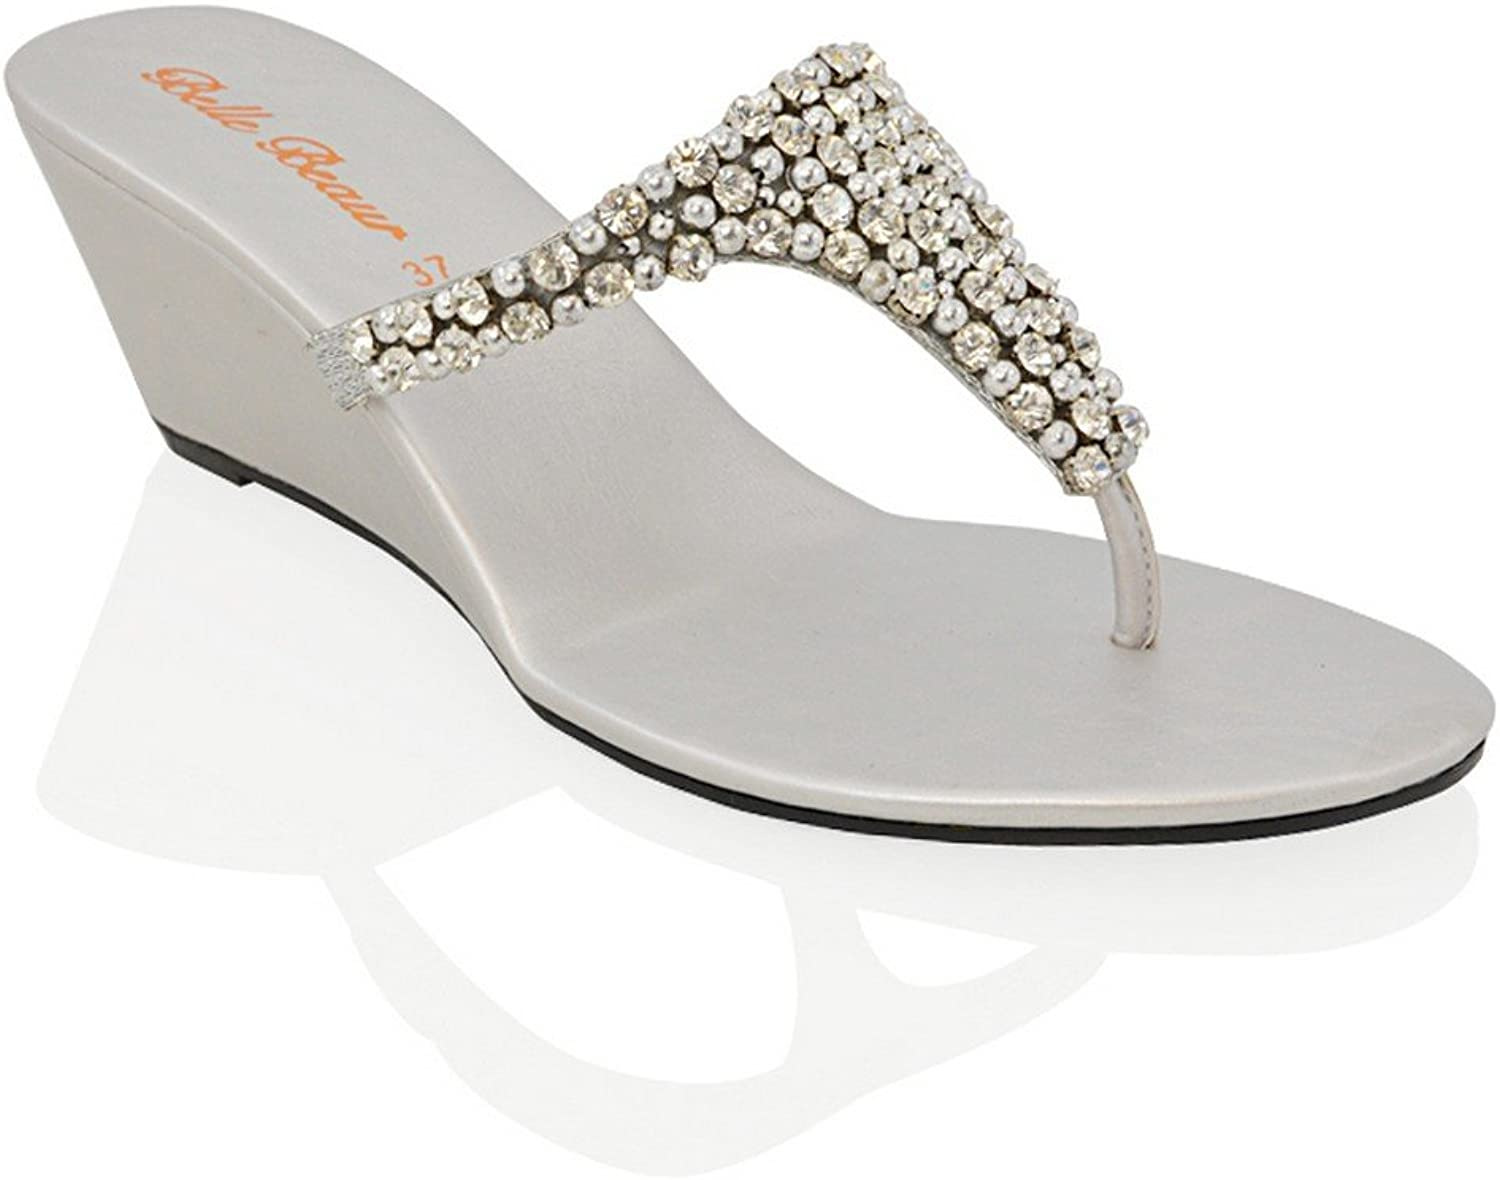 ESSEX GLAM Womens Toe Post Sparkly Diamante Synthetic Dressy Wedge Heel Sandals